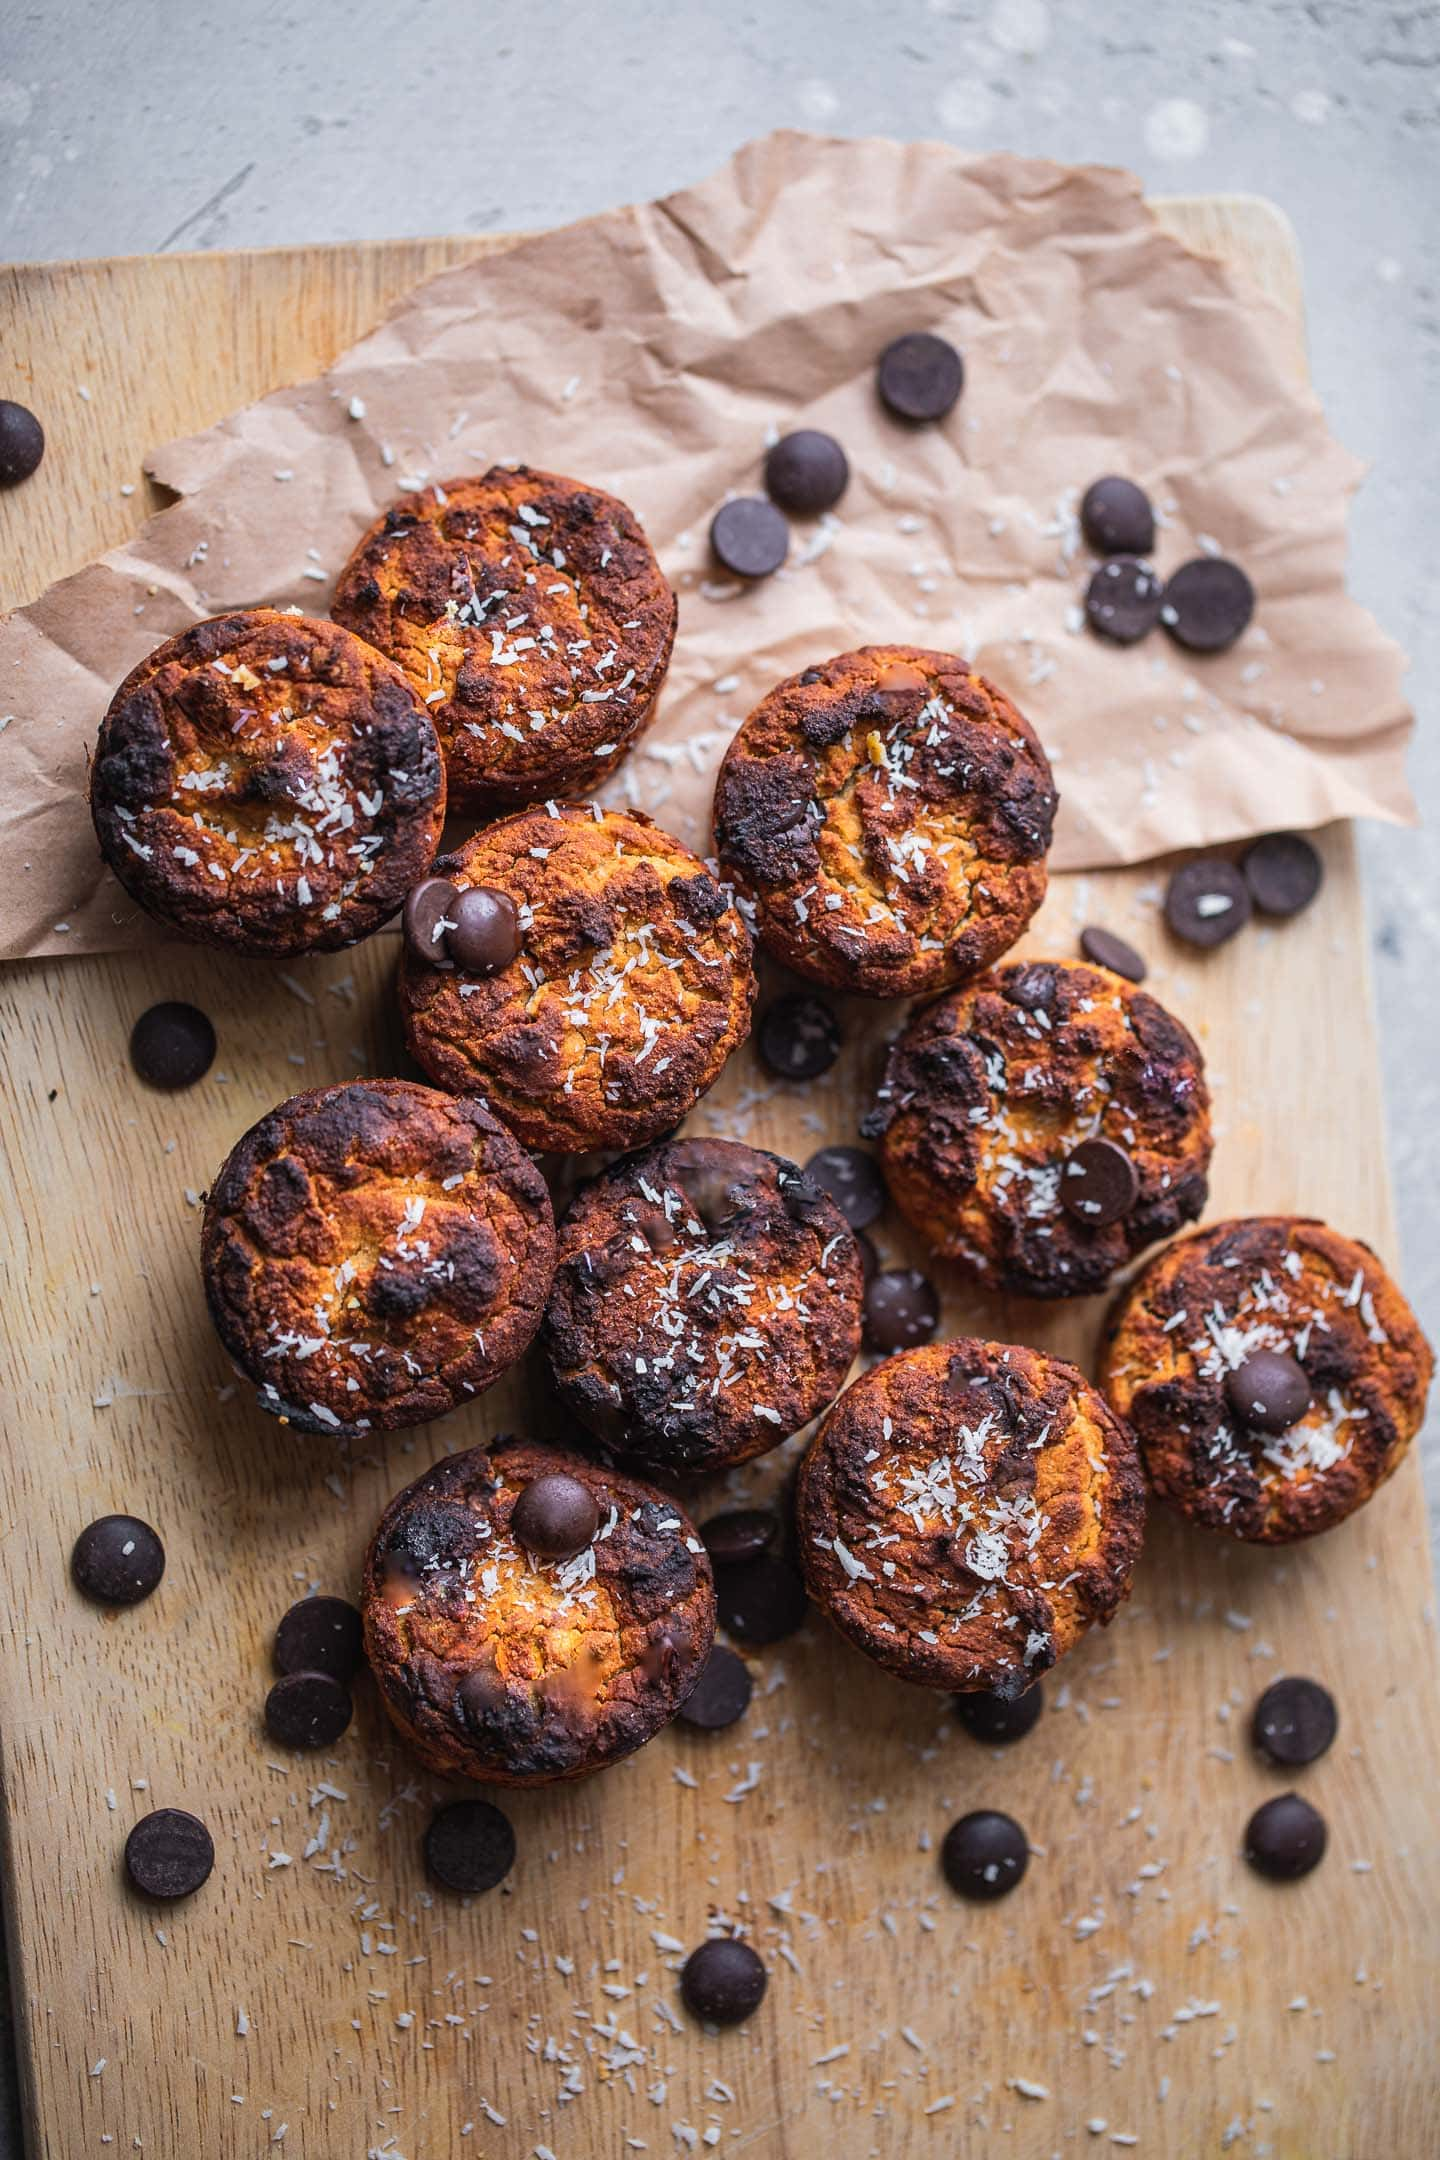 Mini vegan muffins with chocolate chips on a wooden board